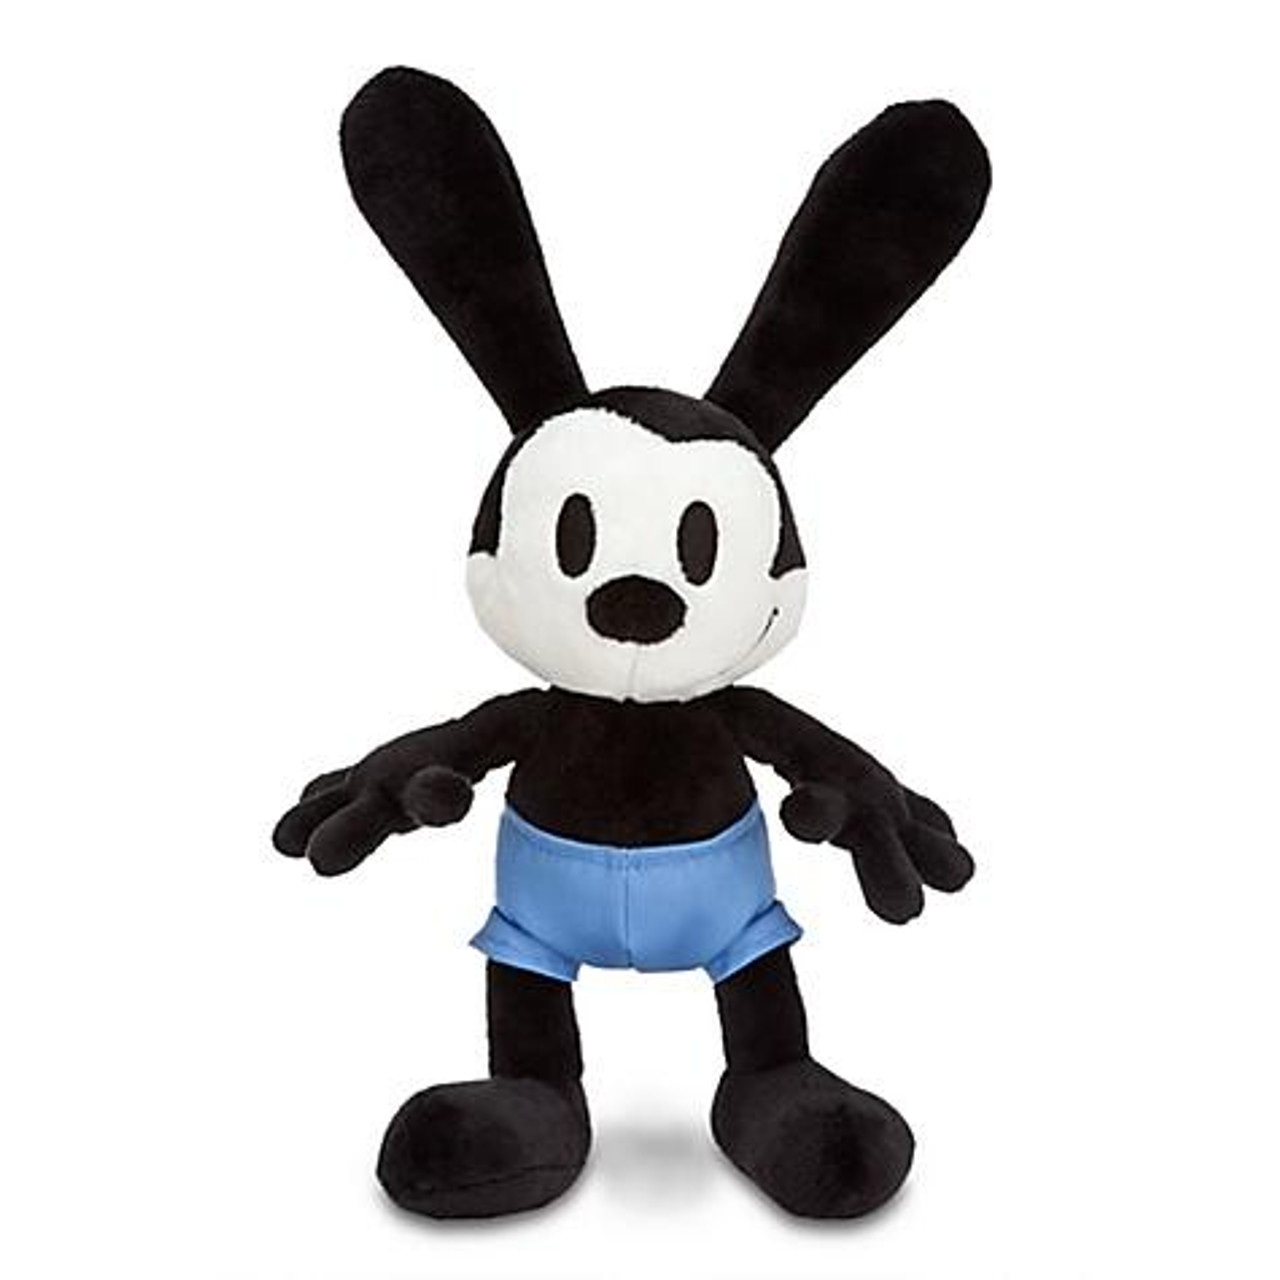 Mickey Mouse Oswald the Lucky Rabbit Minnie Mouse Felix the Cat ...   1280x1280